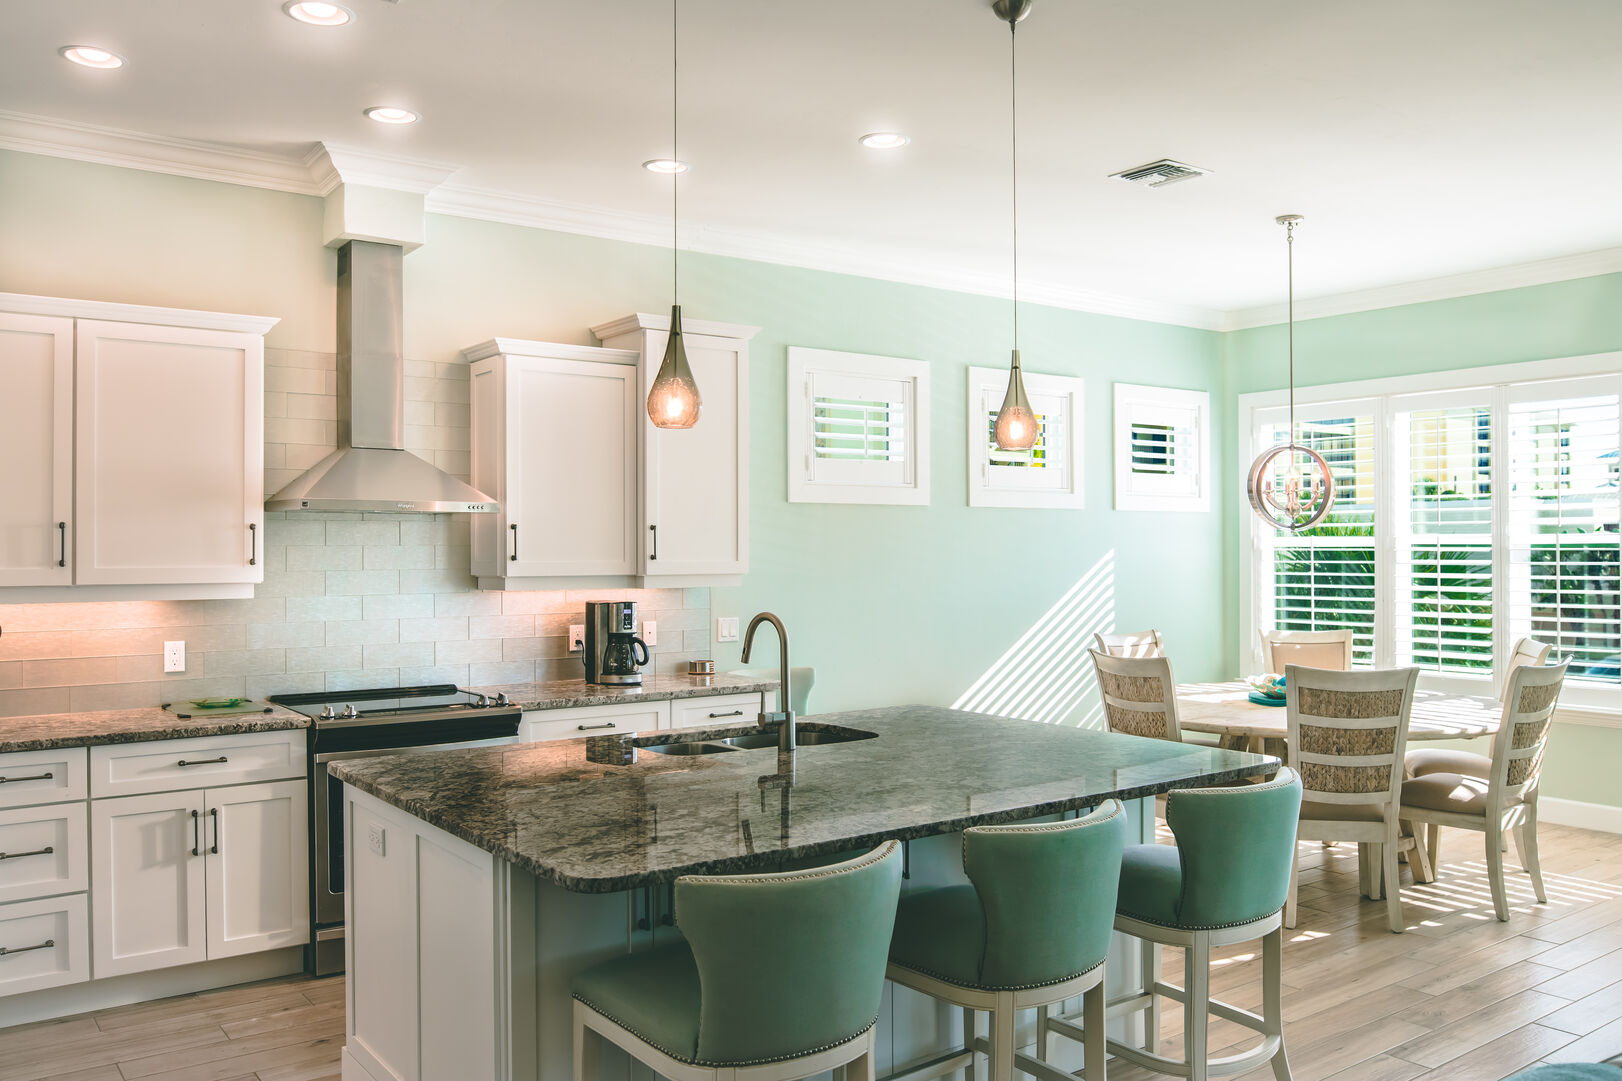 Picture of the kitchen island and dining room.